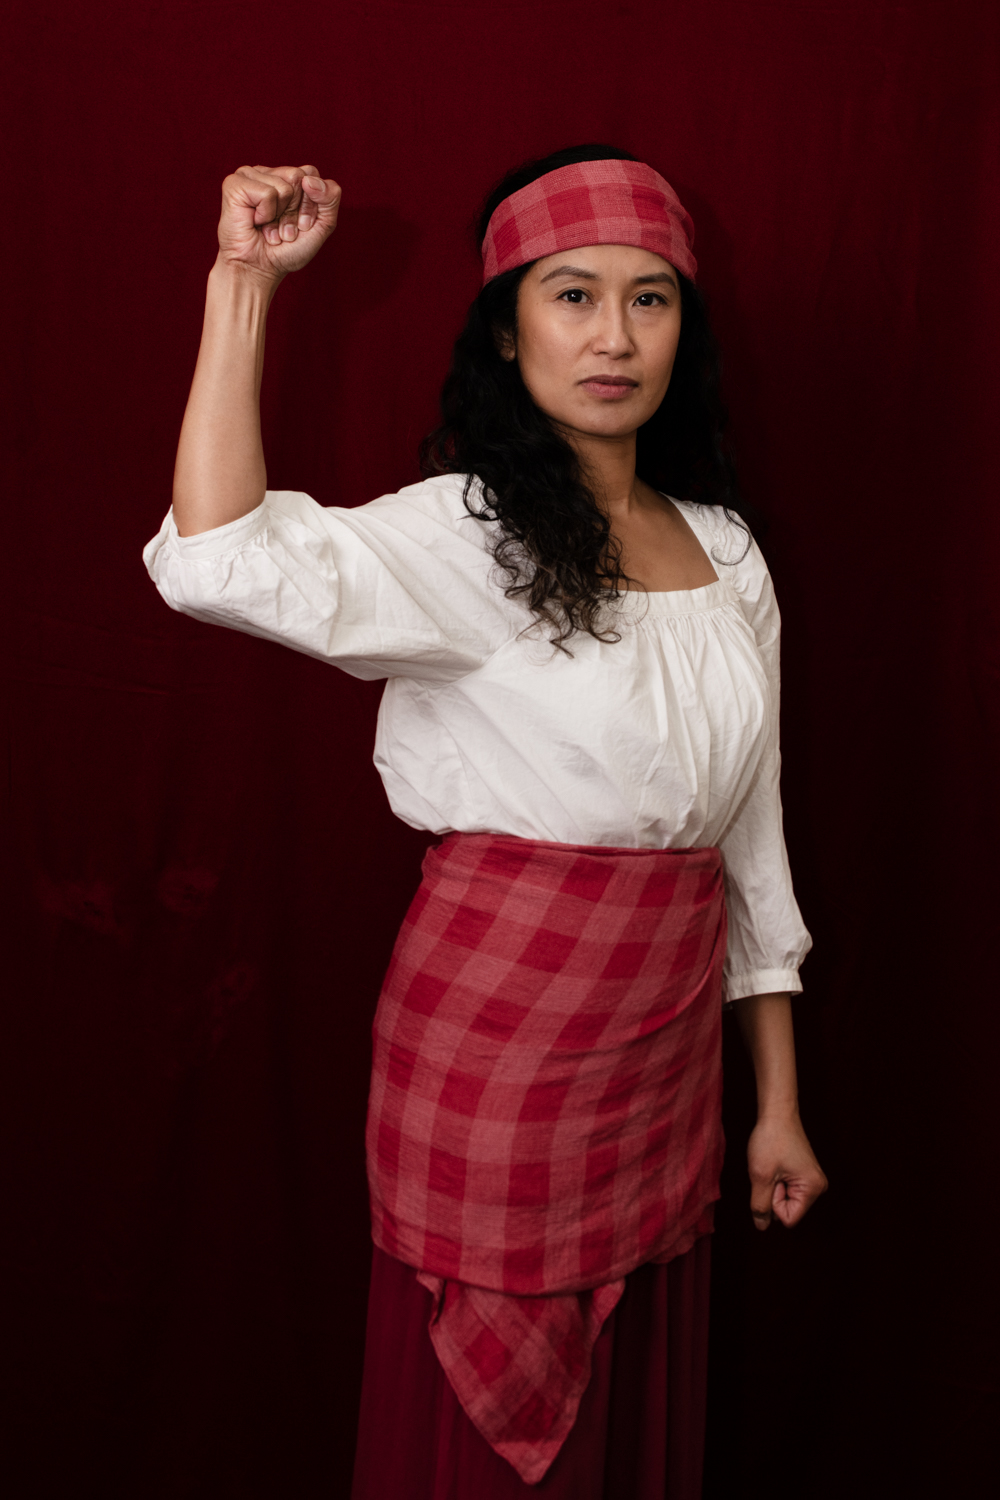 As an outgrowth of this project I hosted an in gallery photoshoot asking people to show up as their version of a Resistor, however they might interpret this concept. Over a four hour period we made images of eight separate groups and individuals. From the embodiment of Gabriel Silang, the Filipina revolutionary leader who lead the fight for independence from Spain in the 1760's to a family of four who are active protestors and brought their beautiful signs, this was an incredible way to expand the project from the past to the present.